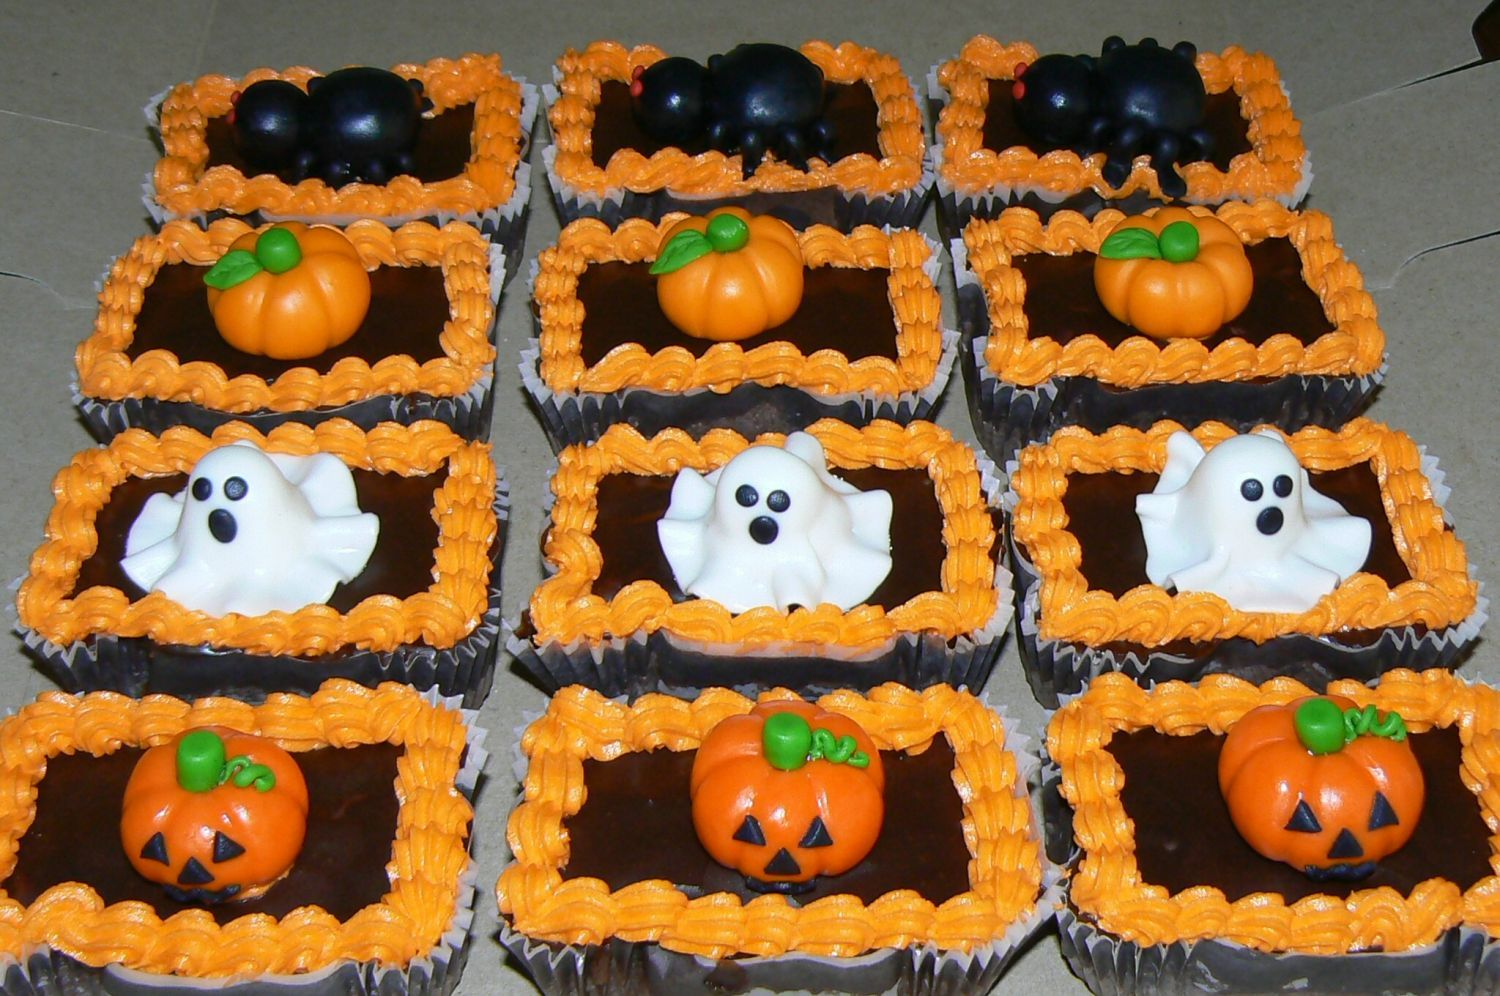 - These are some individual brownies that a customer requested.  They are toped with a chocolate glaze and halloween figures that I made out of fondant.